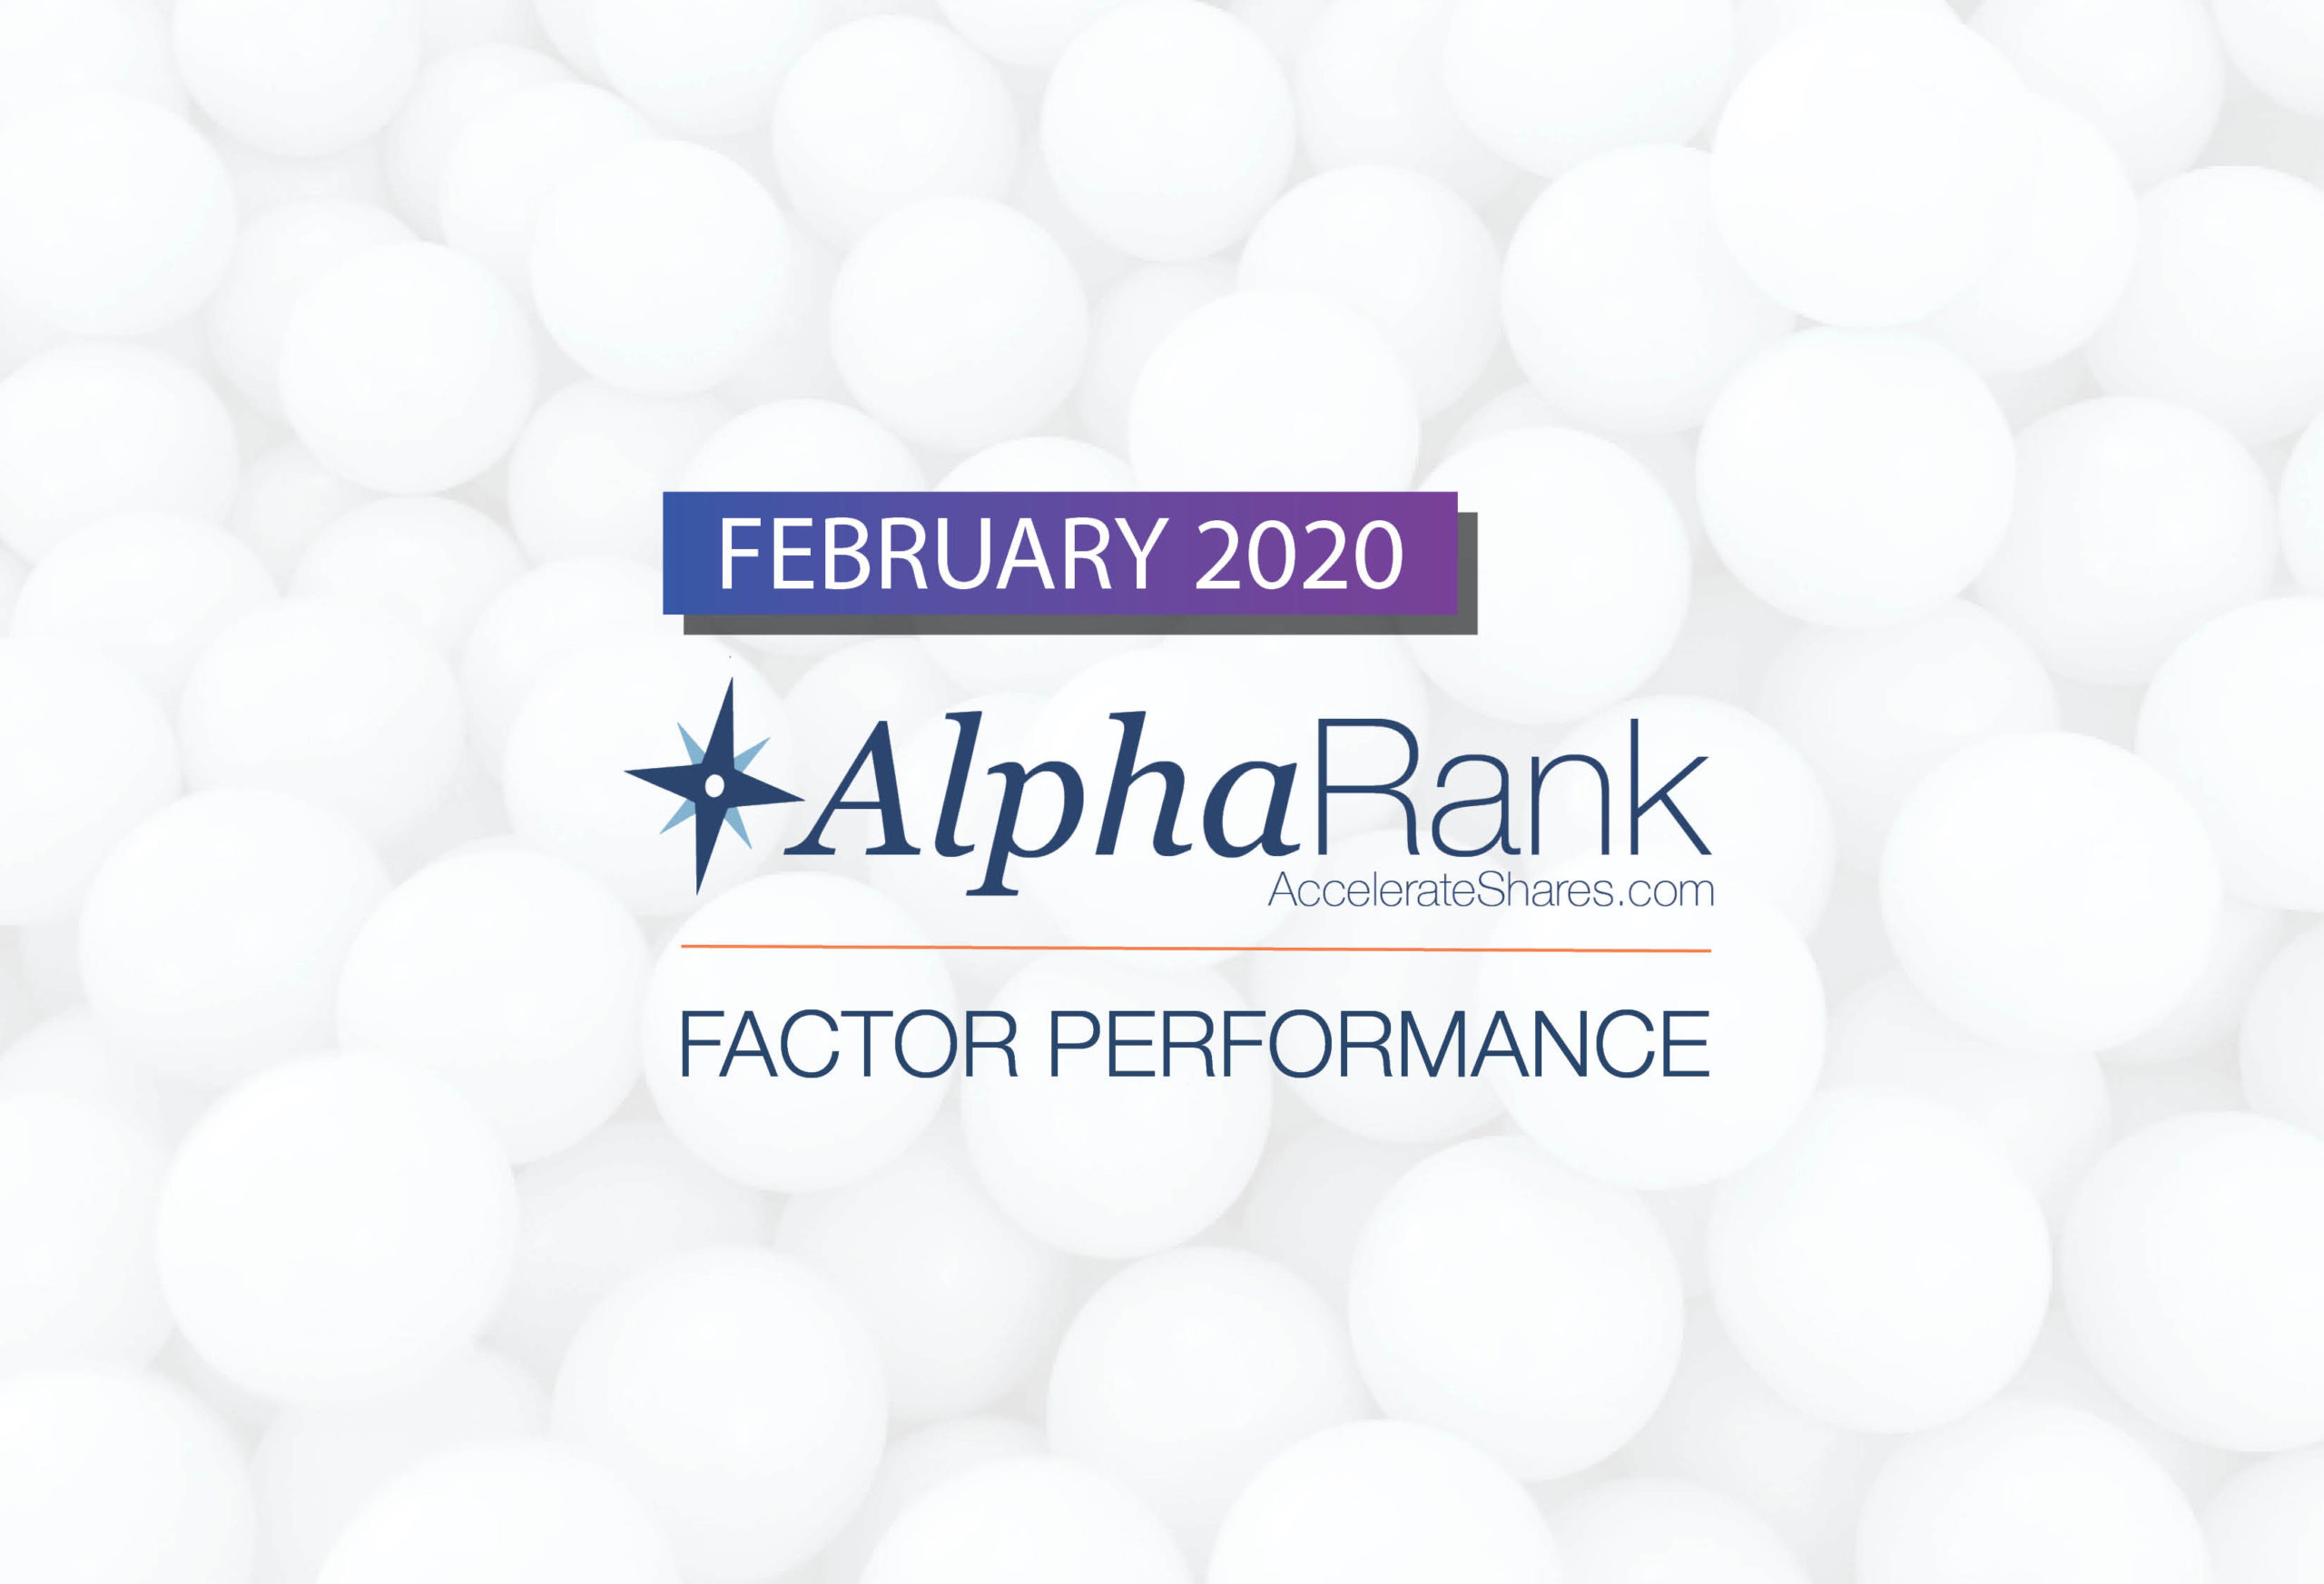 AlphaRank Factor Performance— February 2020